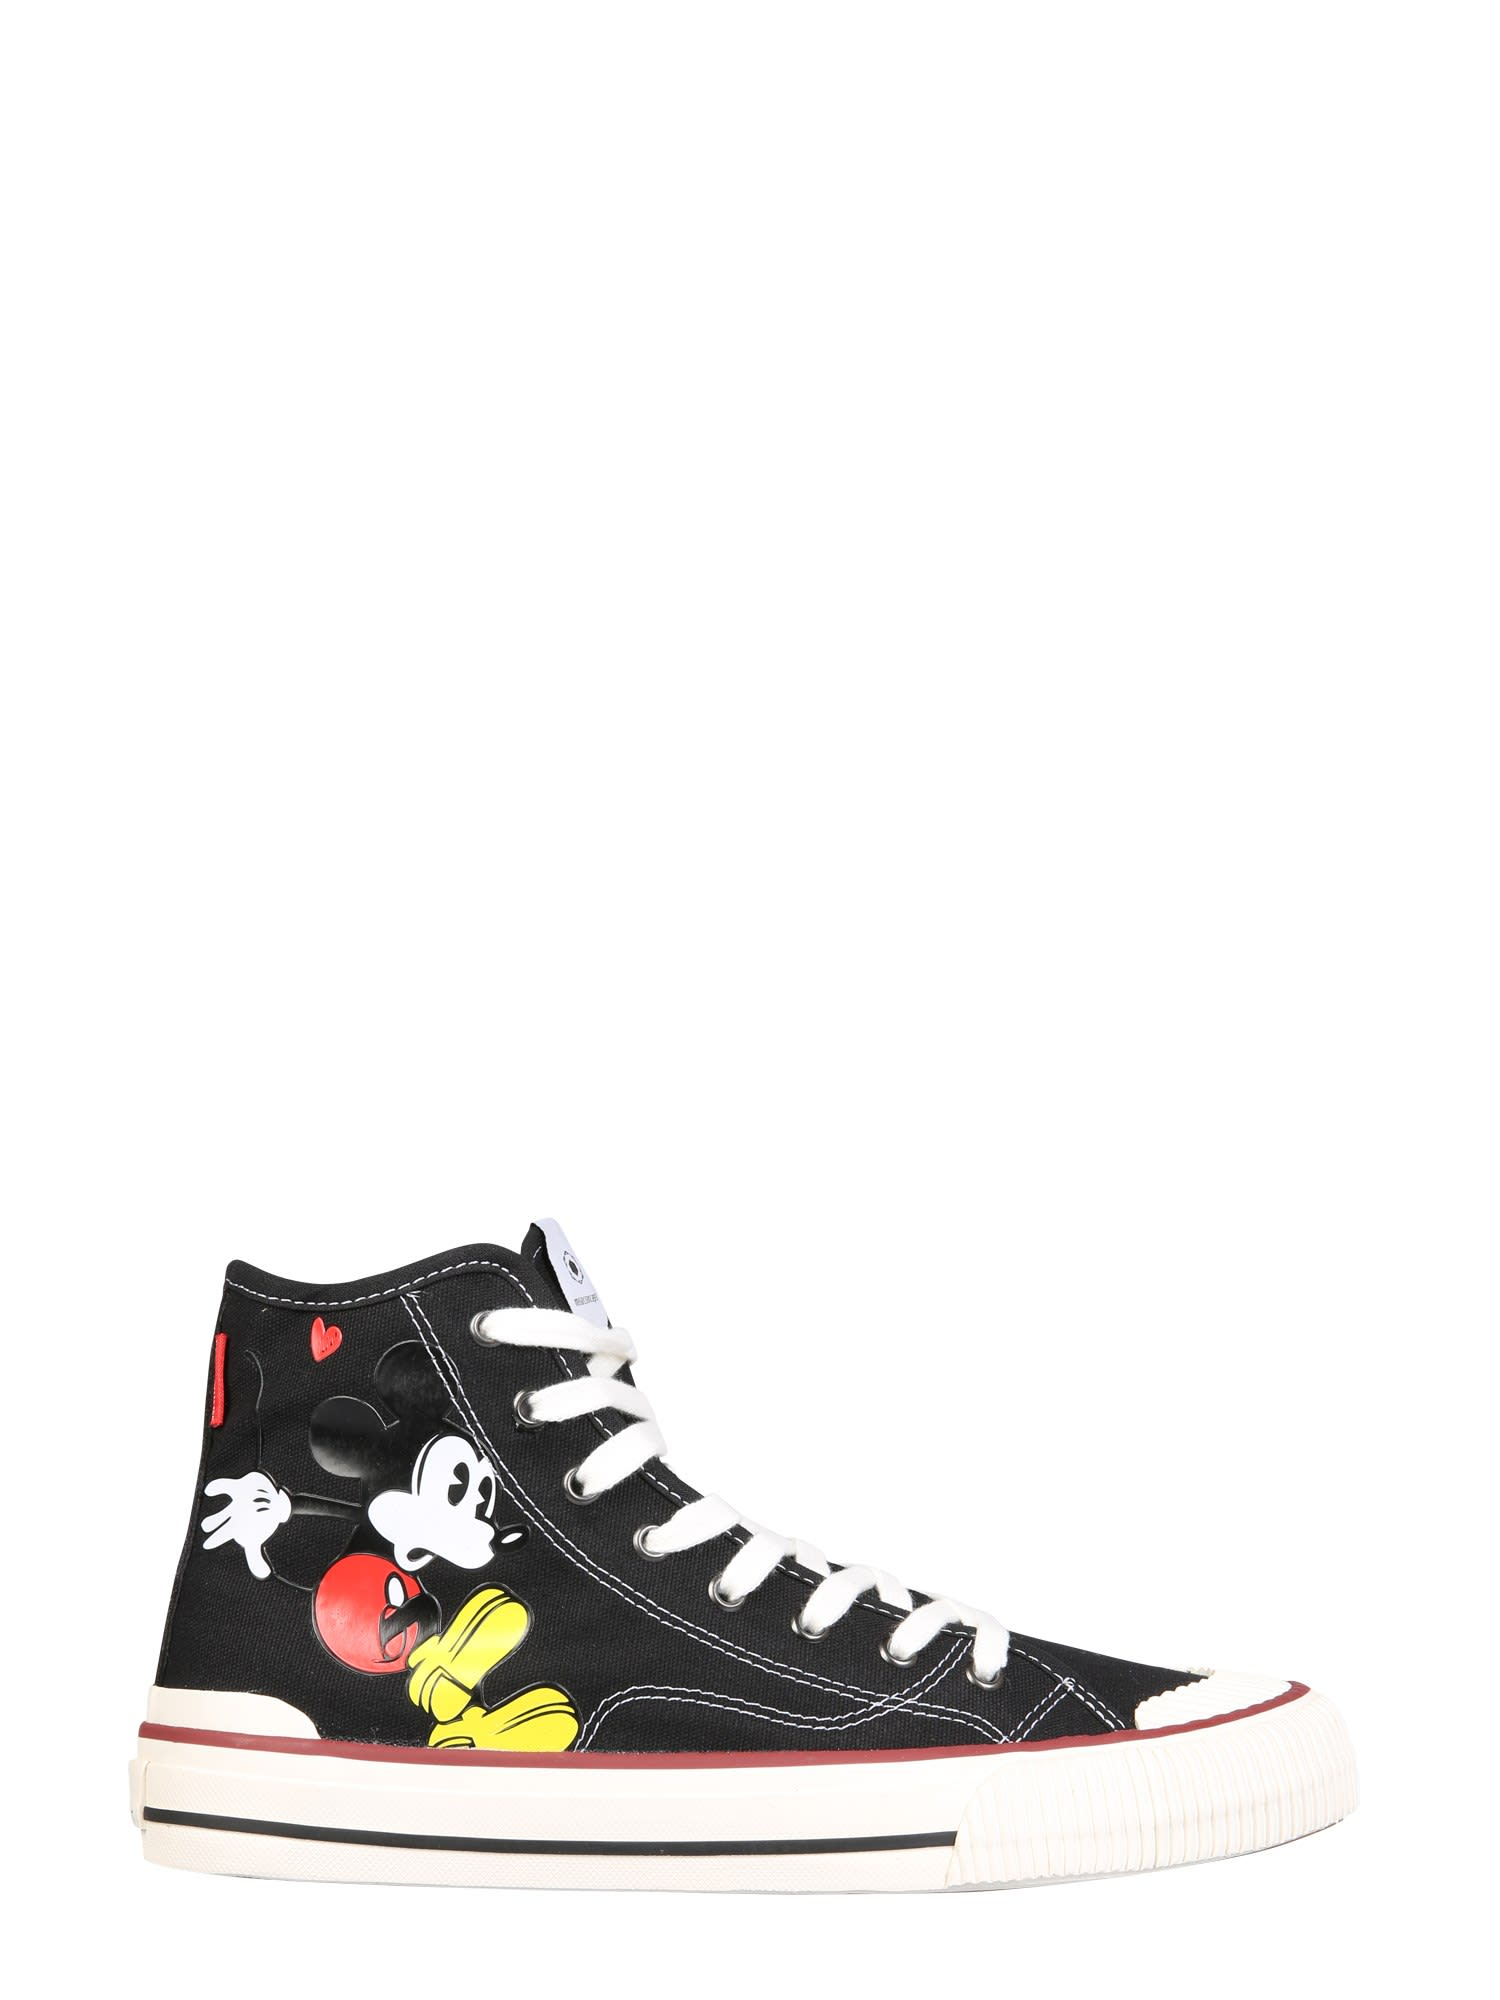 M.O.A. master of arts High-top master Collector Sneakers